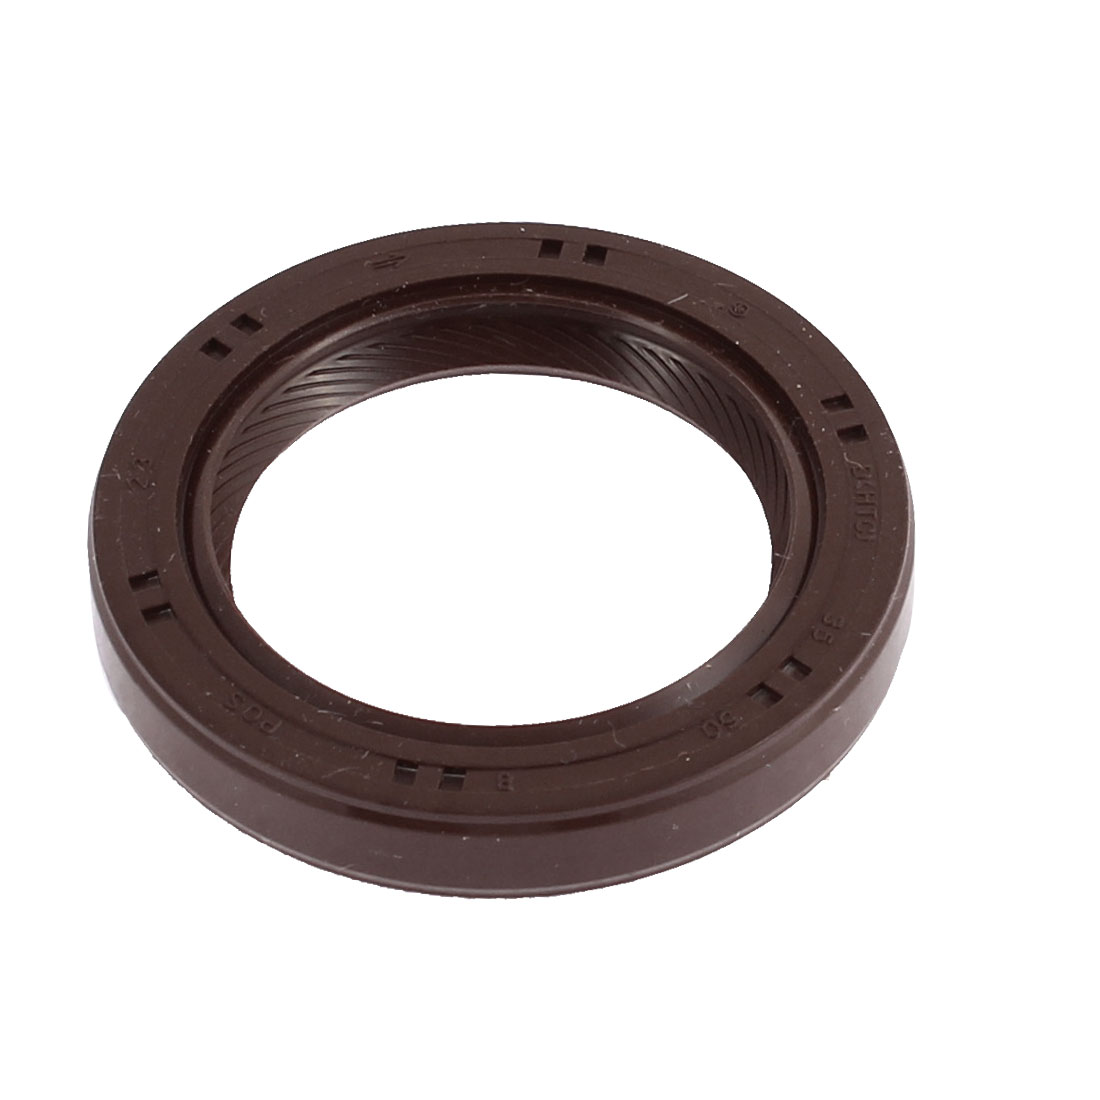 Rubber Oil Seal Ring Gasket Brown 35mm x 50mm x 8mm